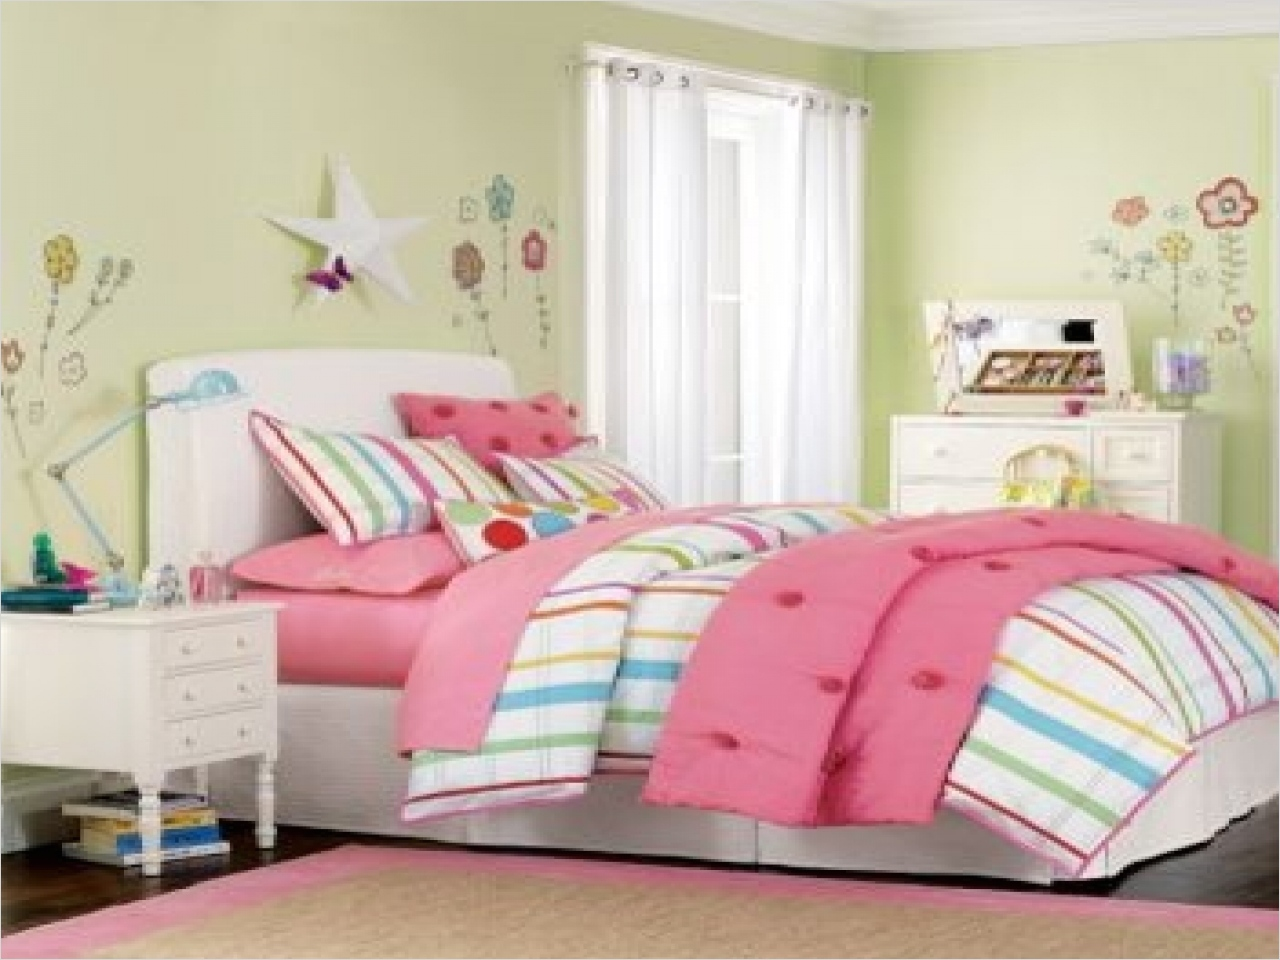 41 Amazing Dream Bedrooms for Teenage Girls 51 Pbteen Design A Room Dream Bedrooms for Teenage Girls Flower Teen Girl Bedroom Pbteen Bedroom 4